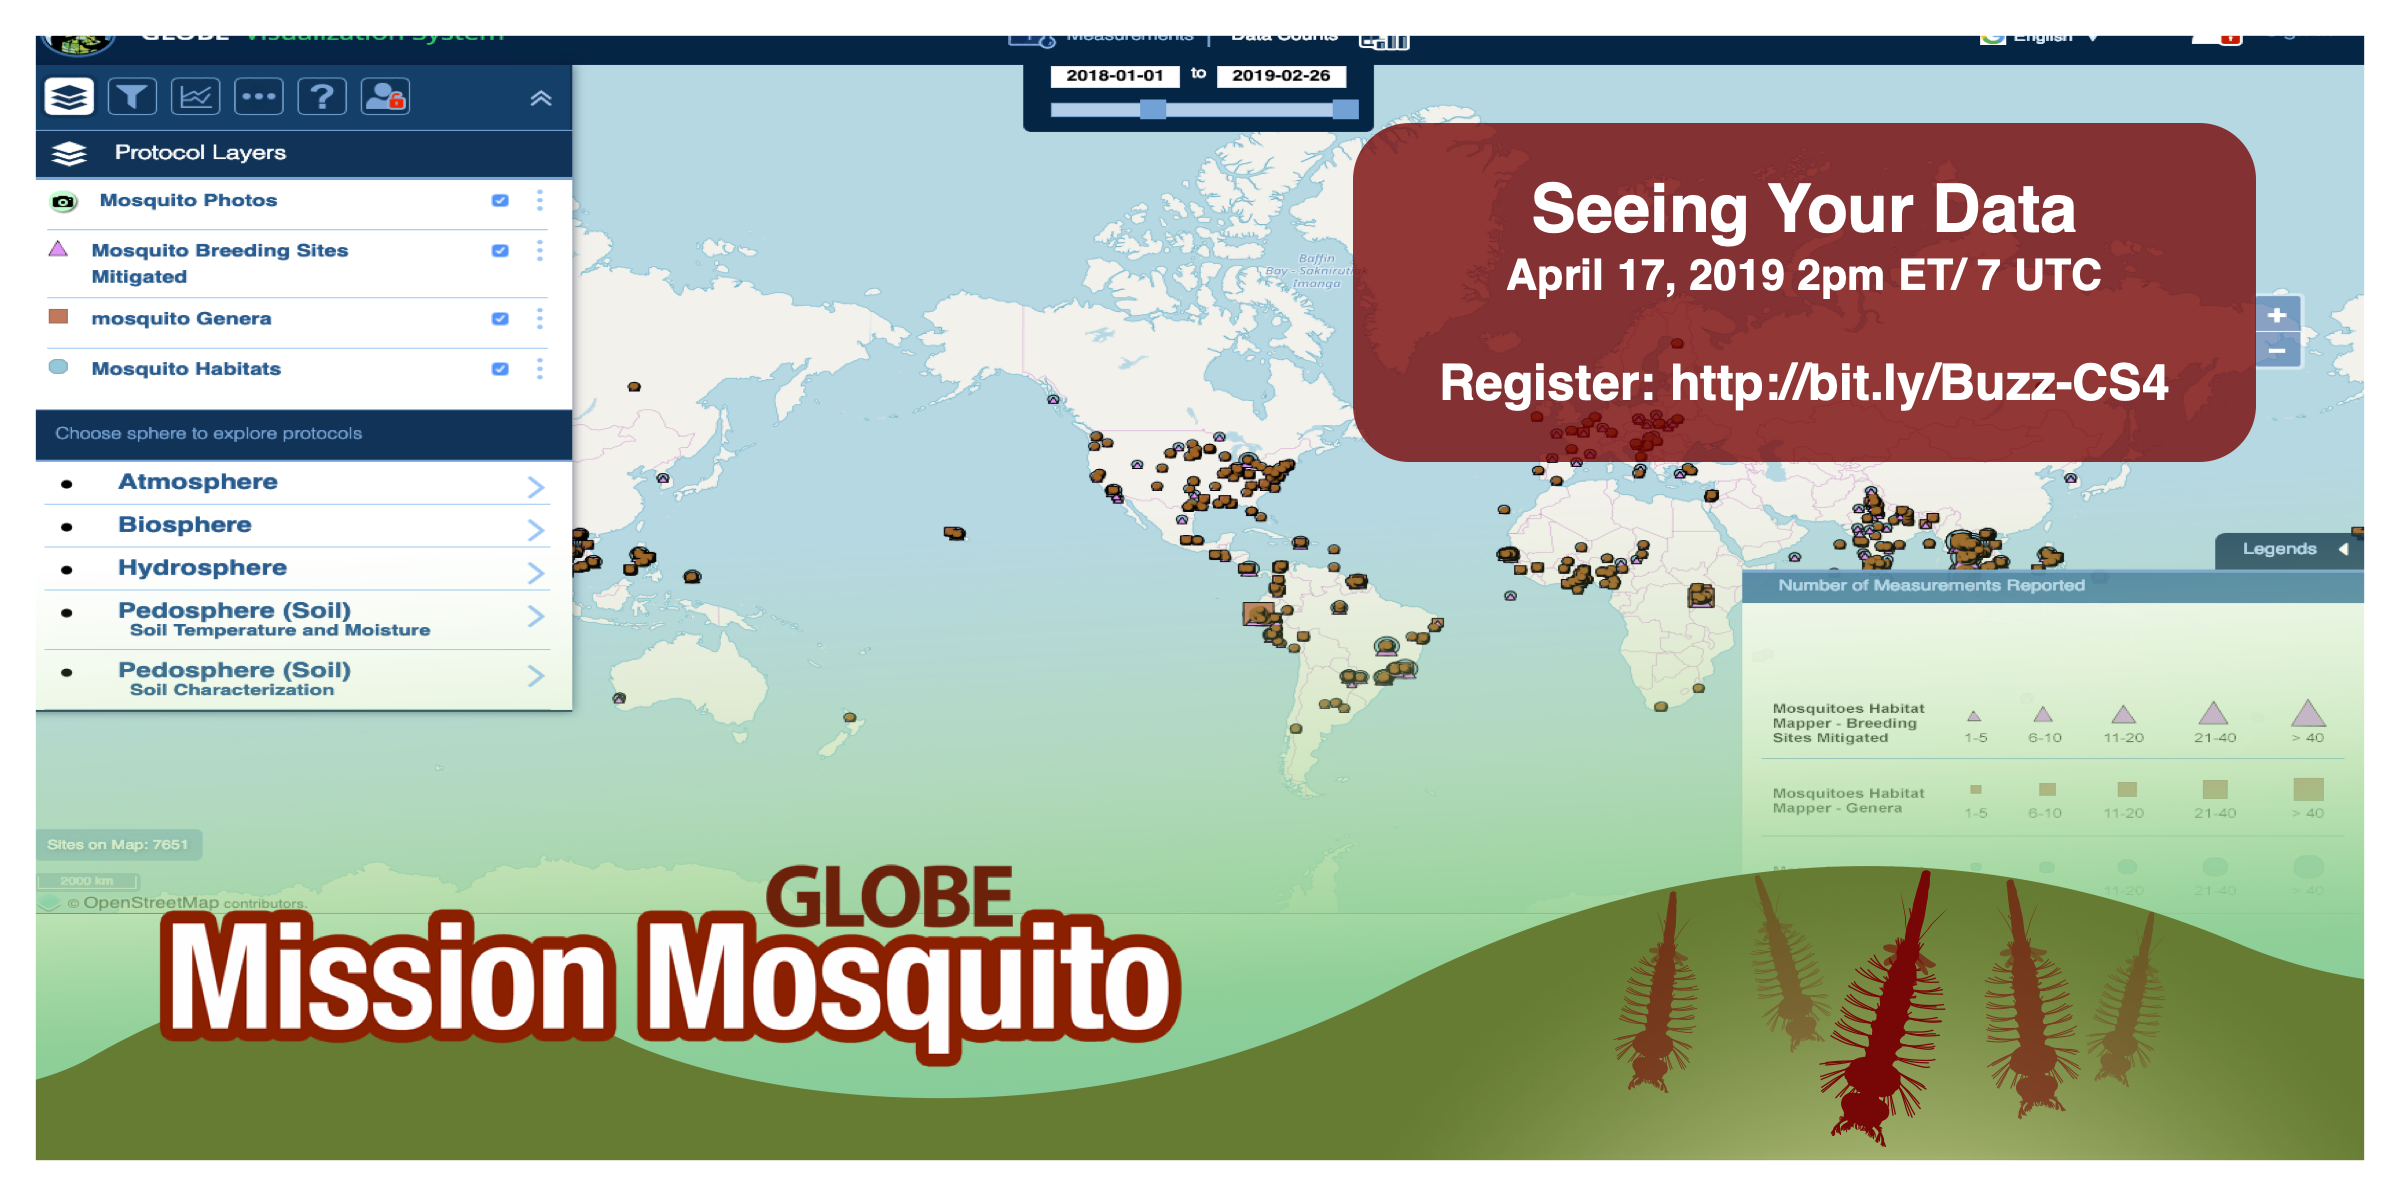 GLOBE Mission Mosquito webinar graphic, with time/date of webinar